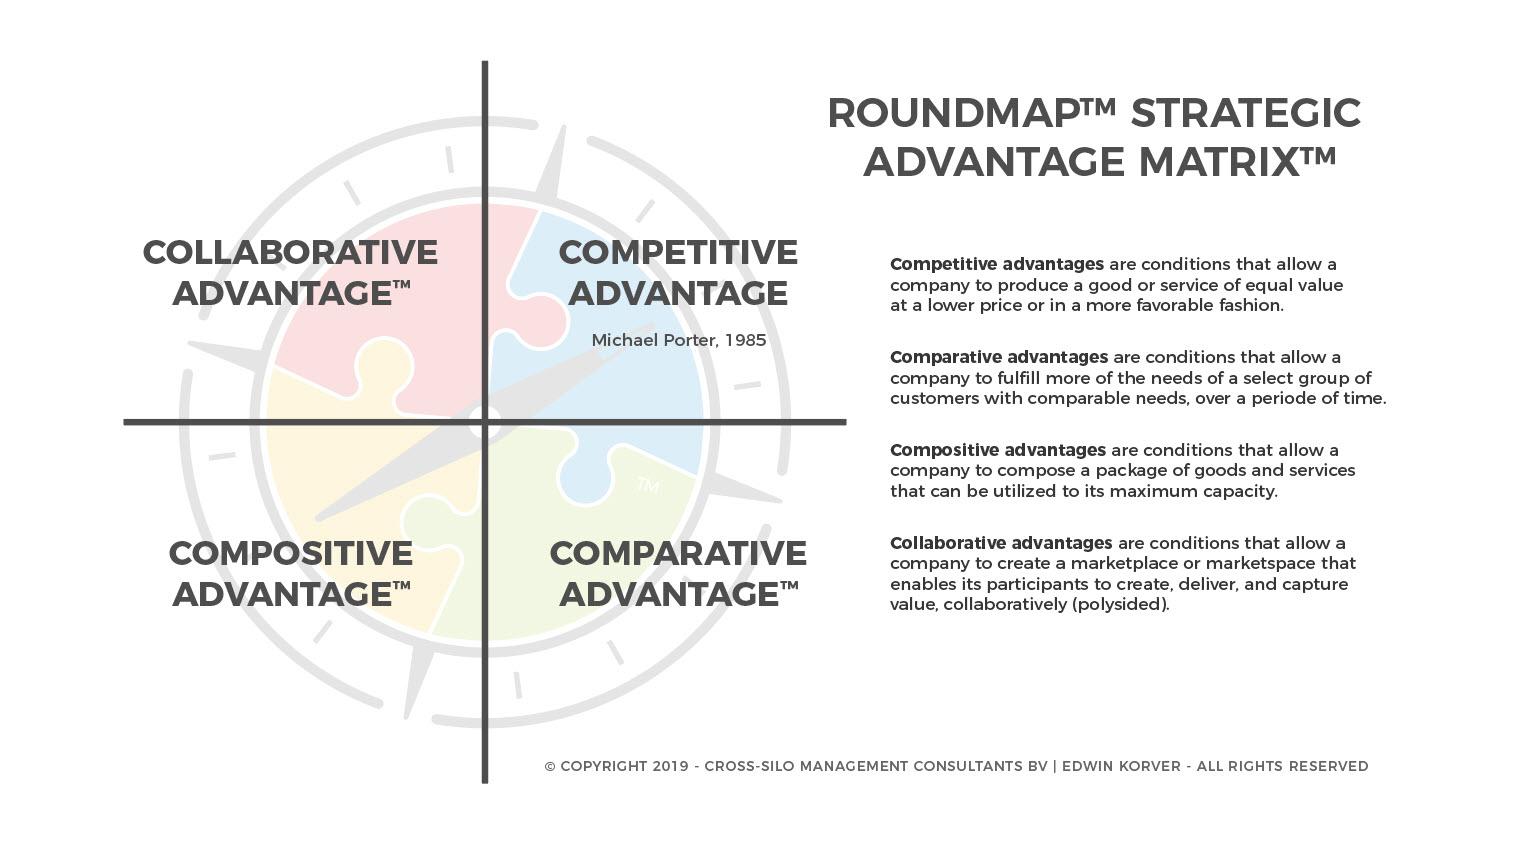 ROUNDMAP_Strategic_Advantage_Matrix